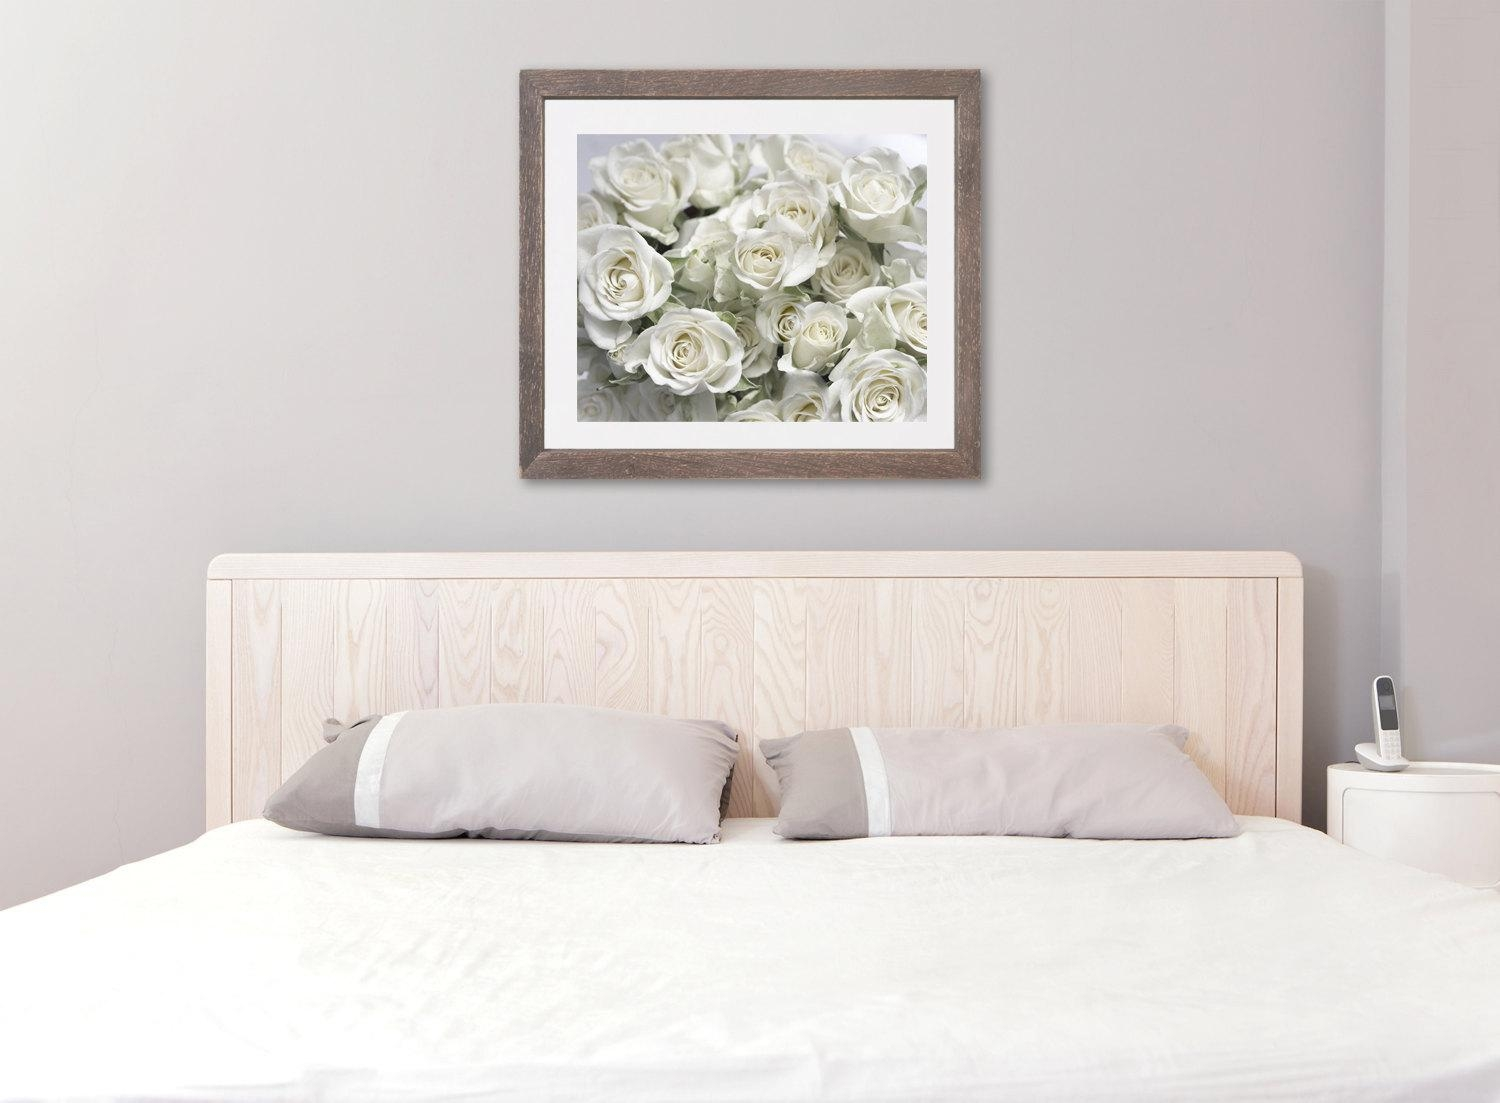 White Roses Floral Bathroom Bedroom Wall Decor | Large Shabby Chic Art With Regard To Shabby Chic Canvas Wall Art (Image 20 of 20)